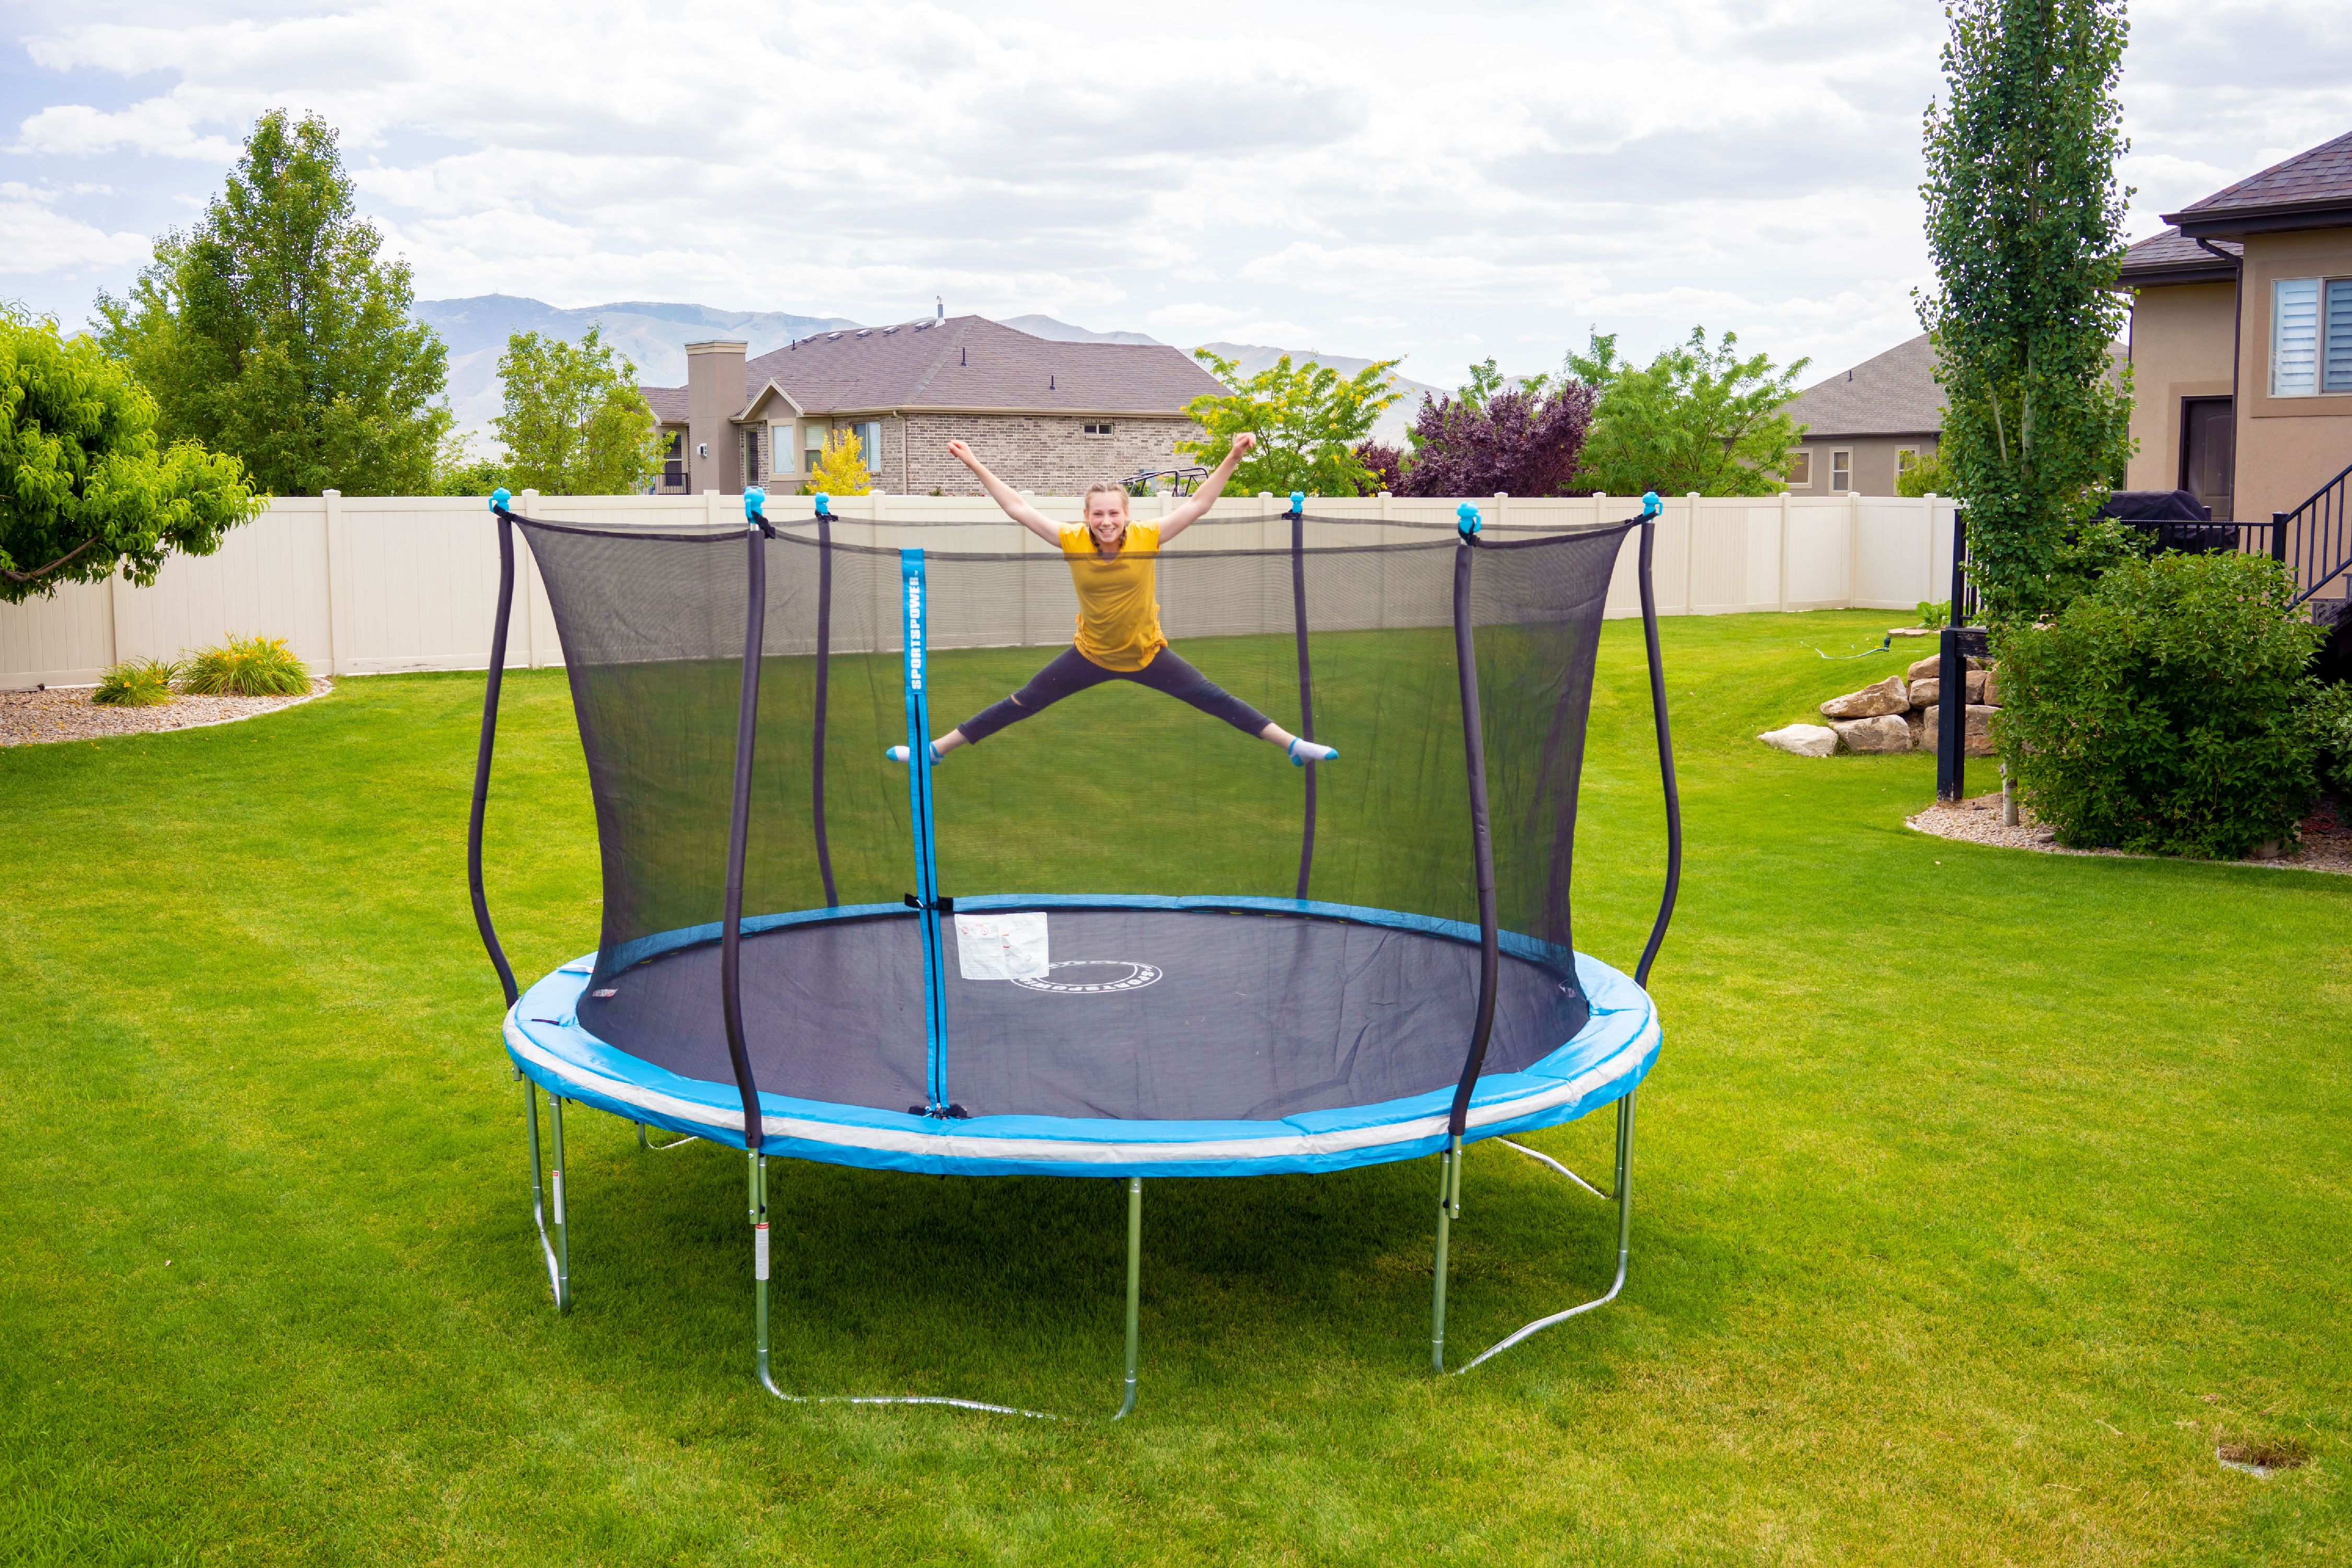 Bouncing on a trampoline in an open area.